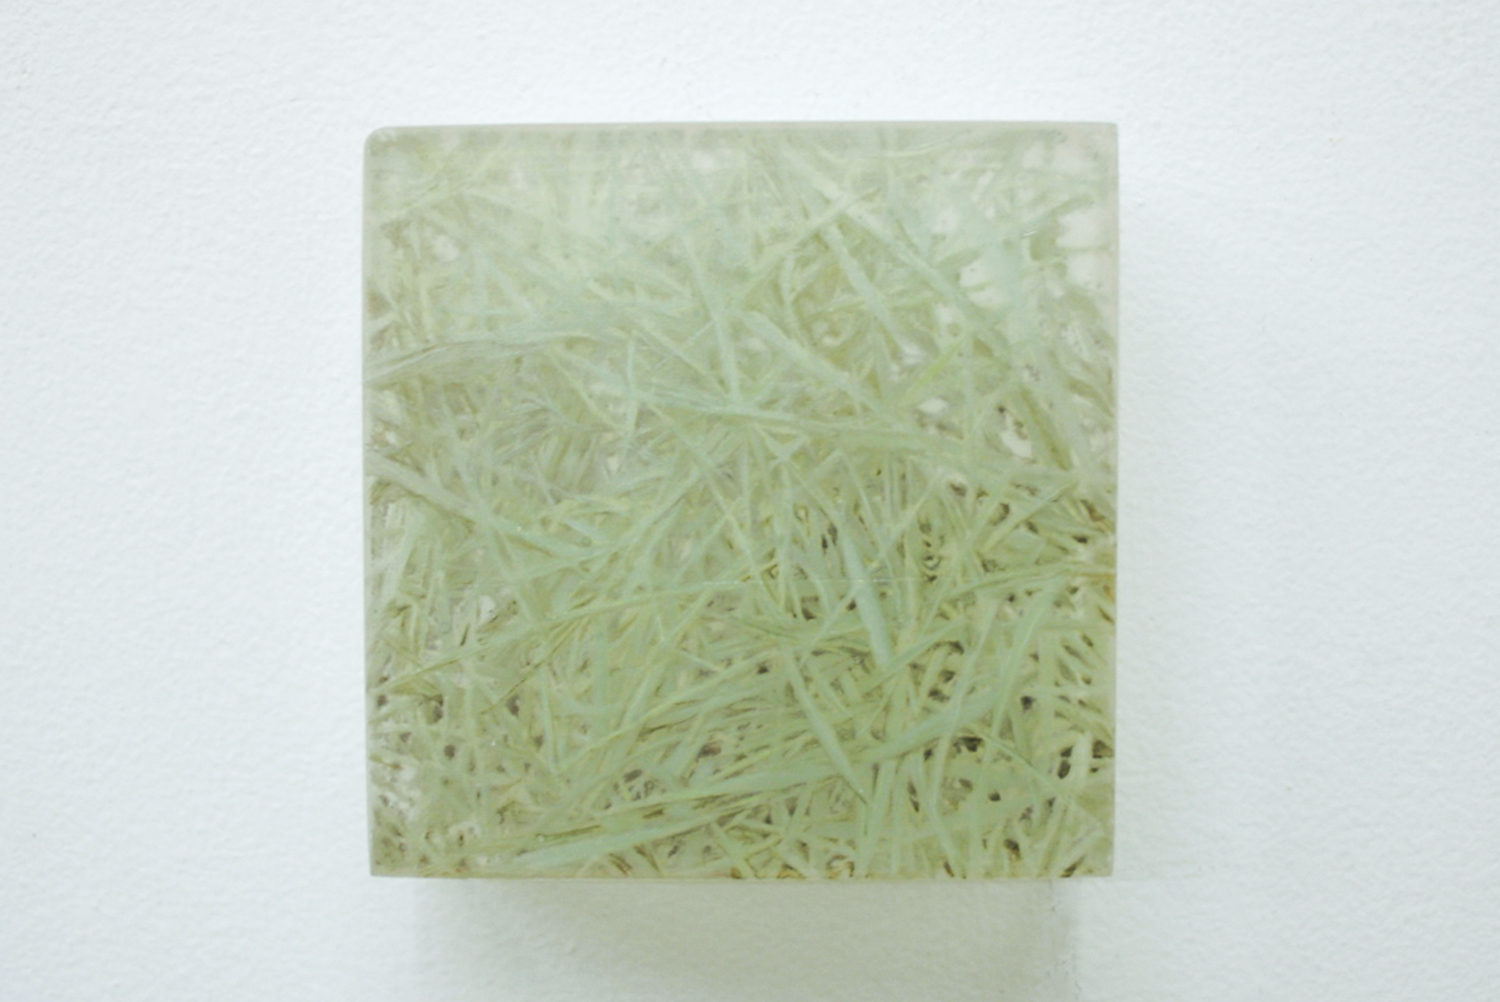 Photo-painting 草上のかおり-1|Scent on the grass-1 |7.5 x 7.5 x 3 cm|Oil on FRP, mixed media| 2009